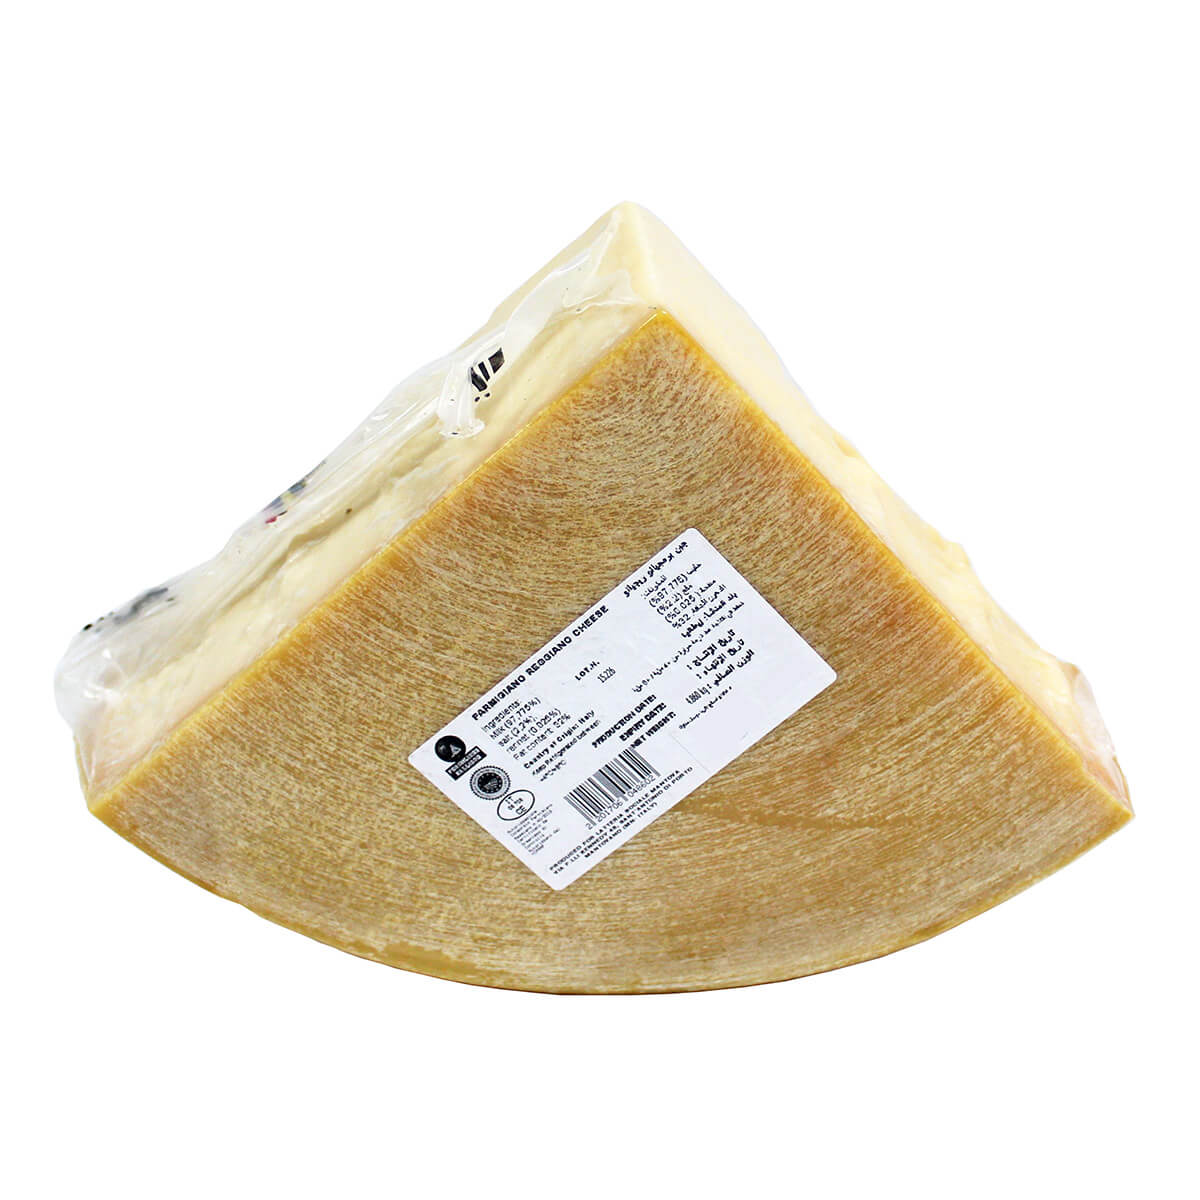 Golden Grains Parmigiano Reggiano - Back.jpg